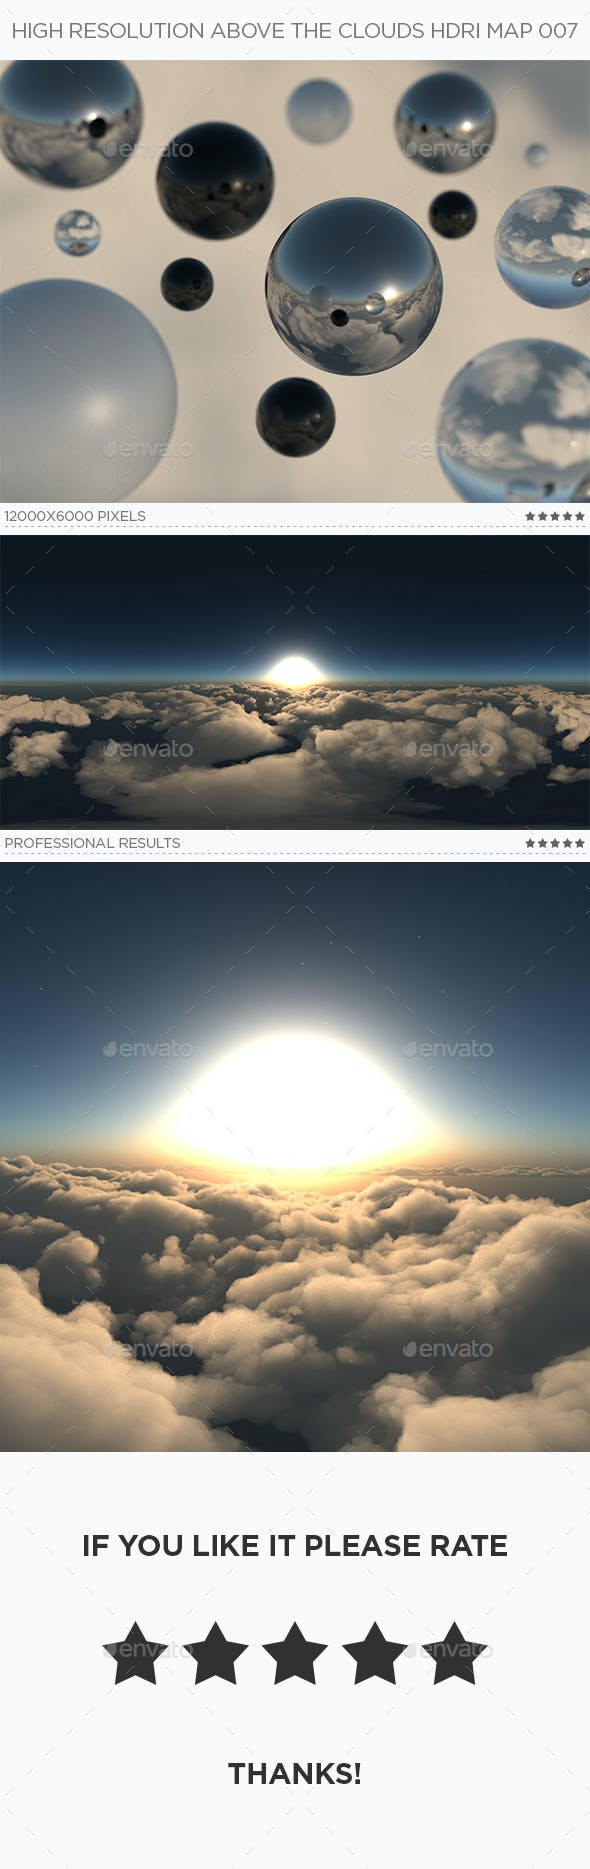 High Resolution Above The Clouds HDRi Map 007 - 3DOcean Item for Sale